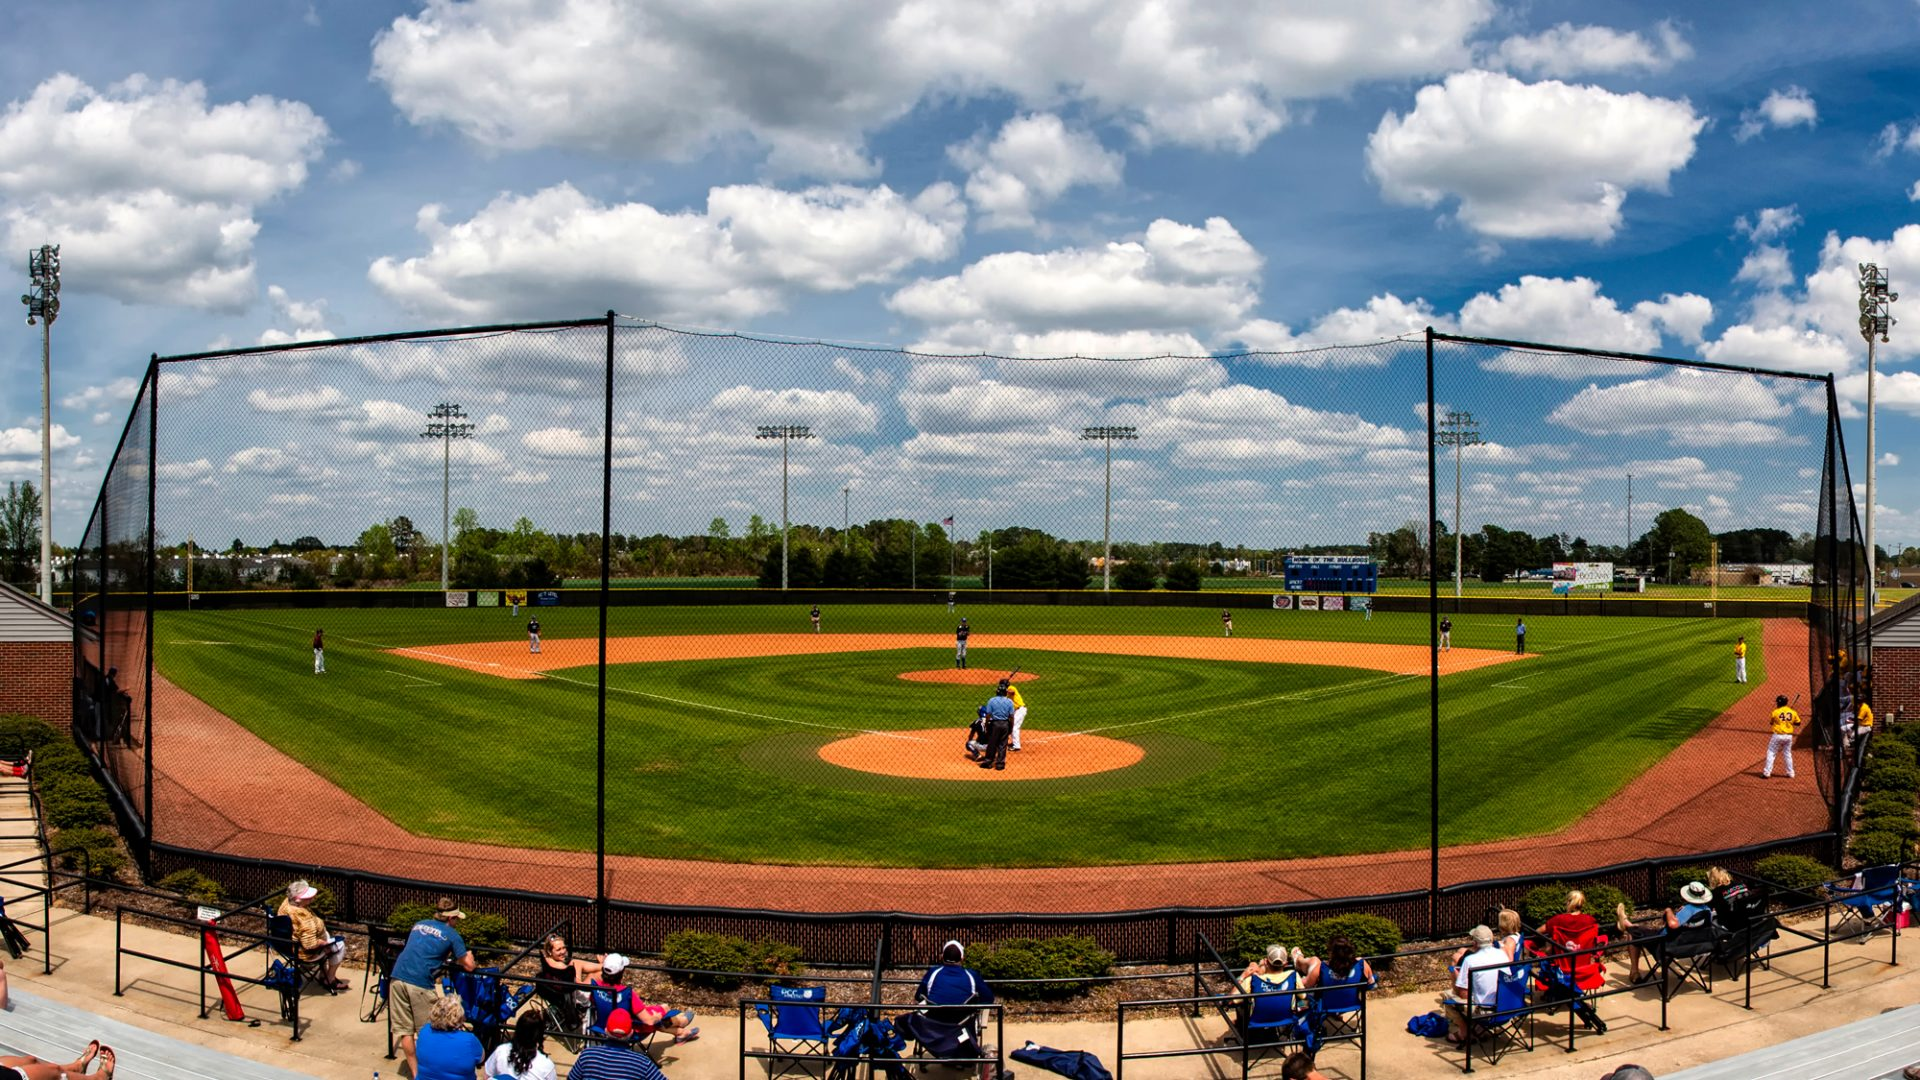 Panorama of PCC Baseball's Minges-Overton Baseball Complex